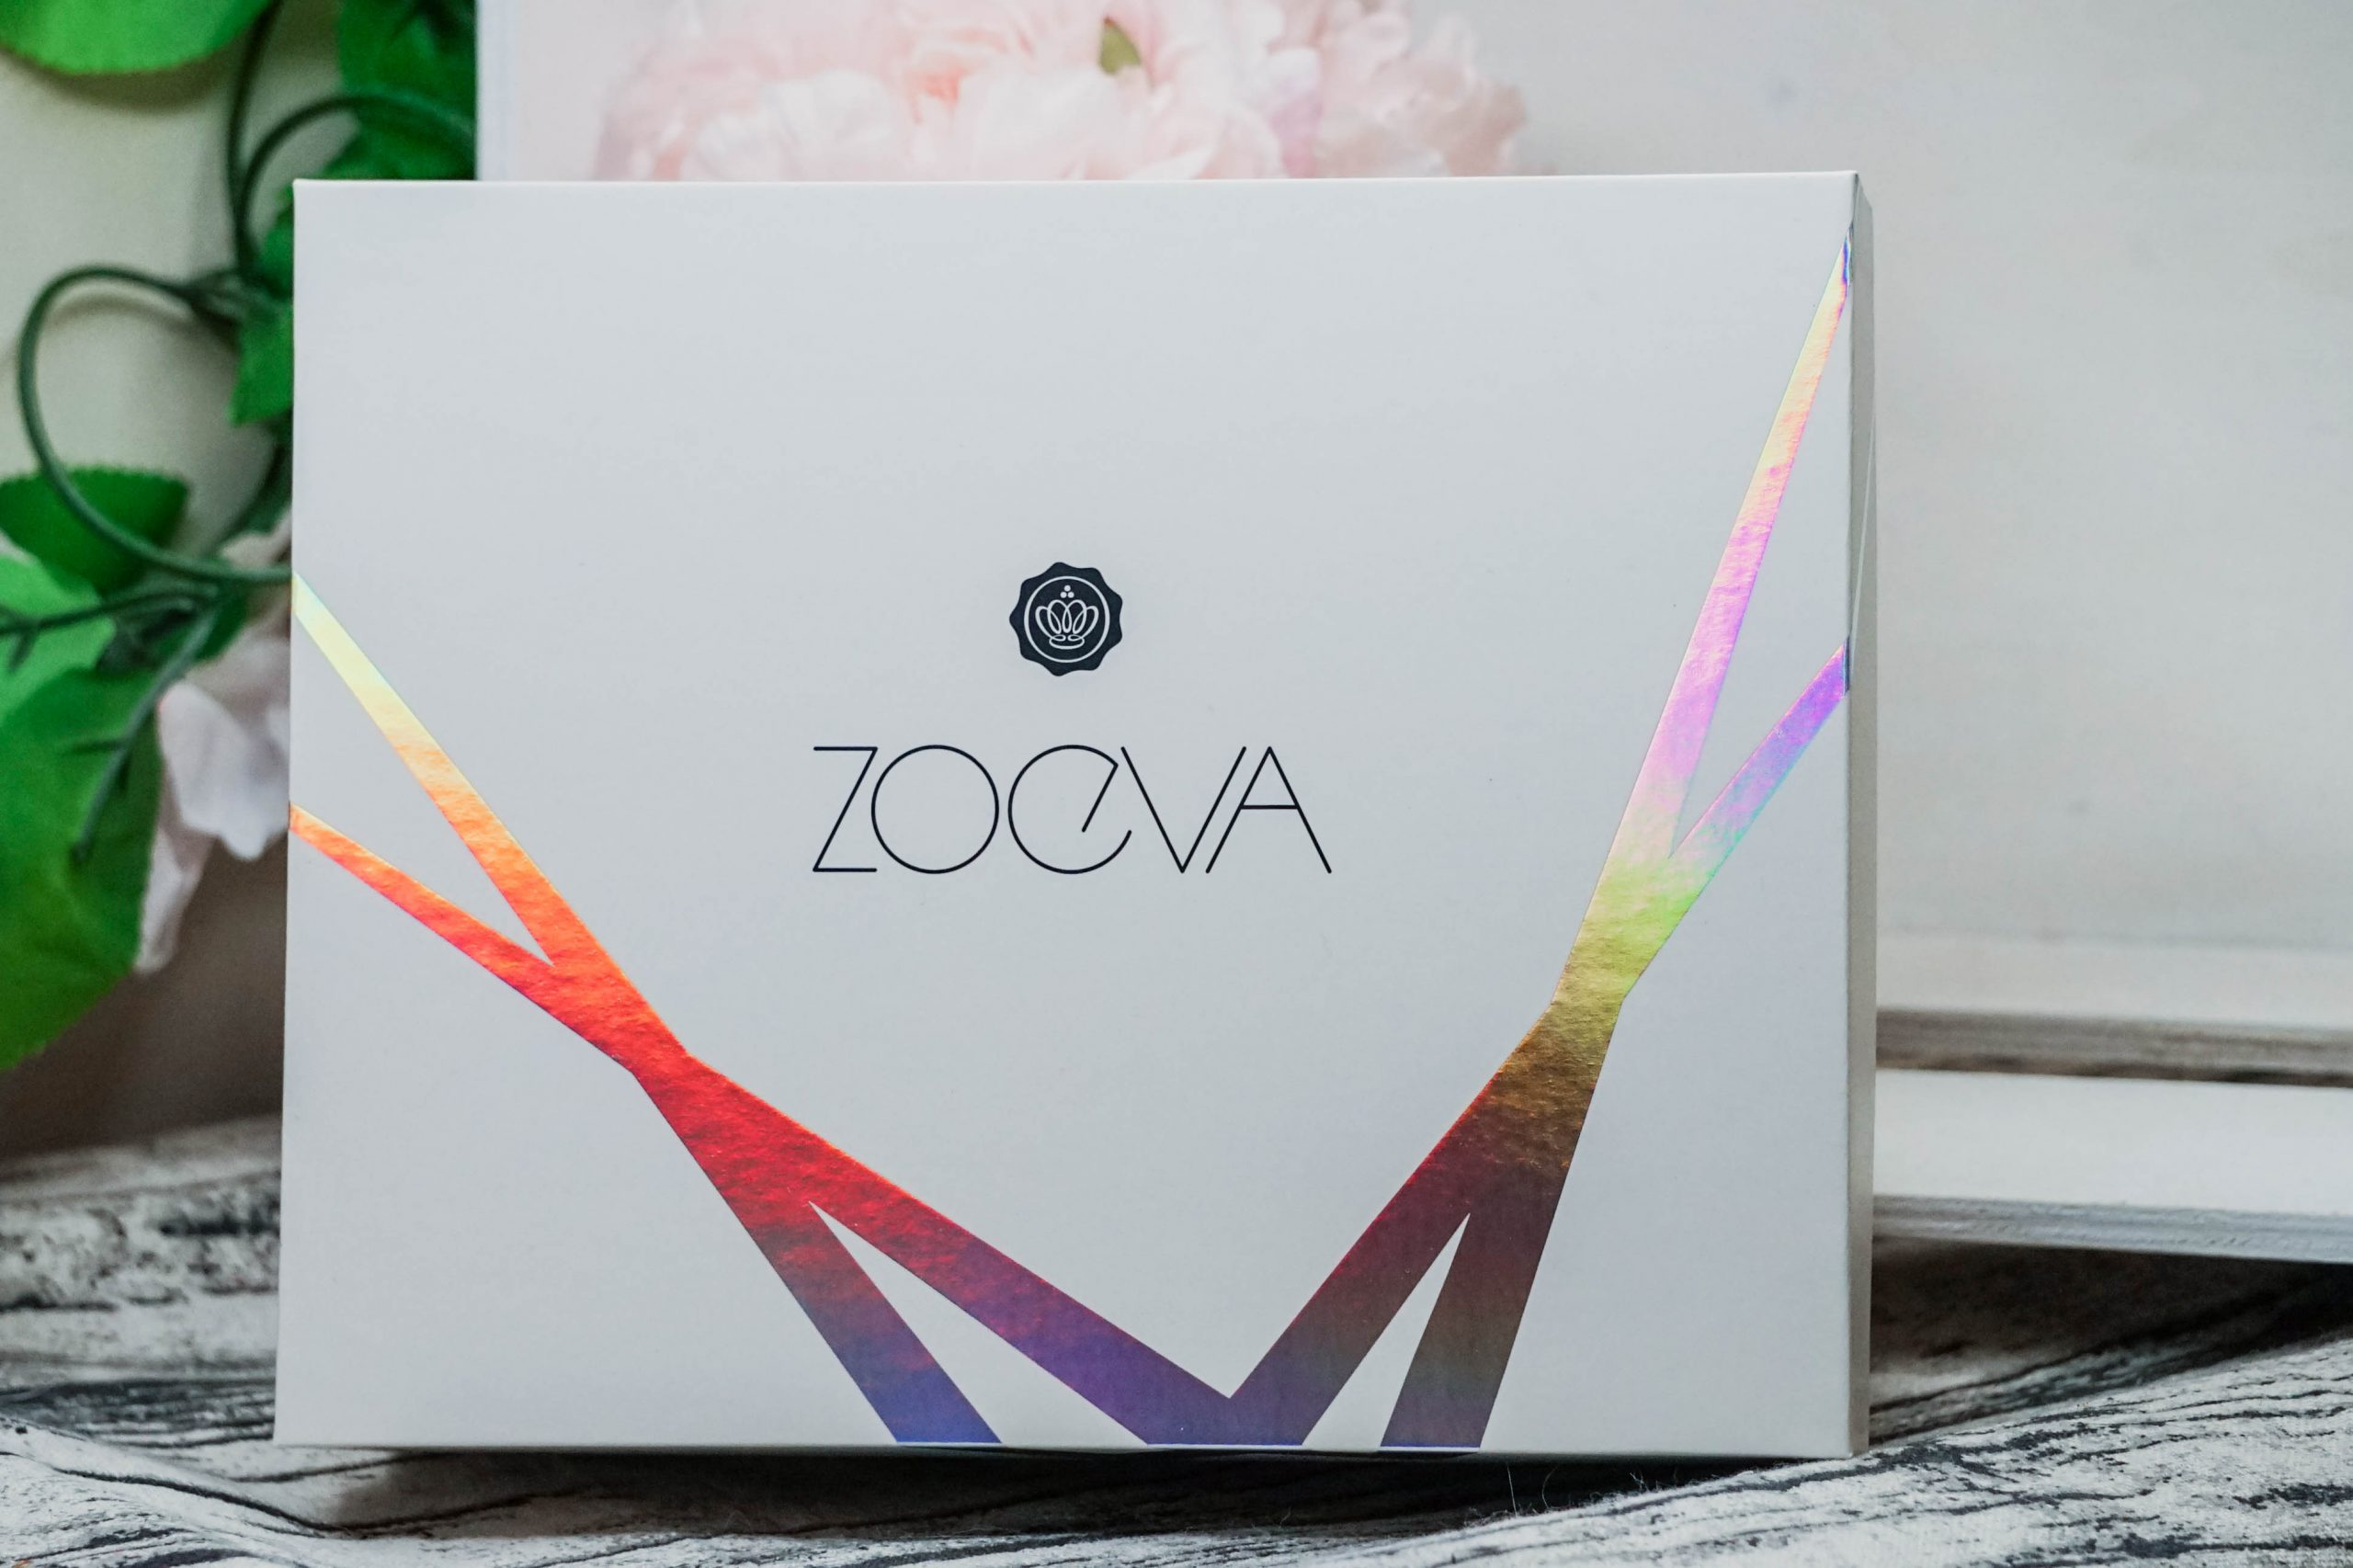 Glossybox X Zoeva Limited Edition 2020 Box